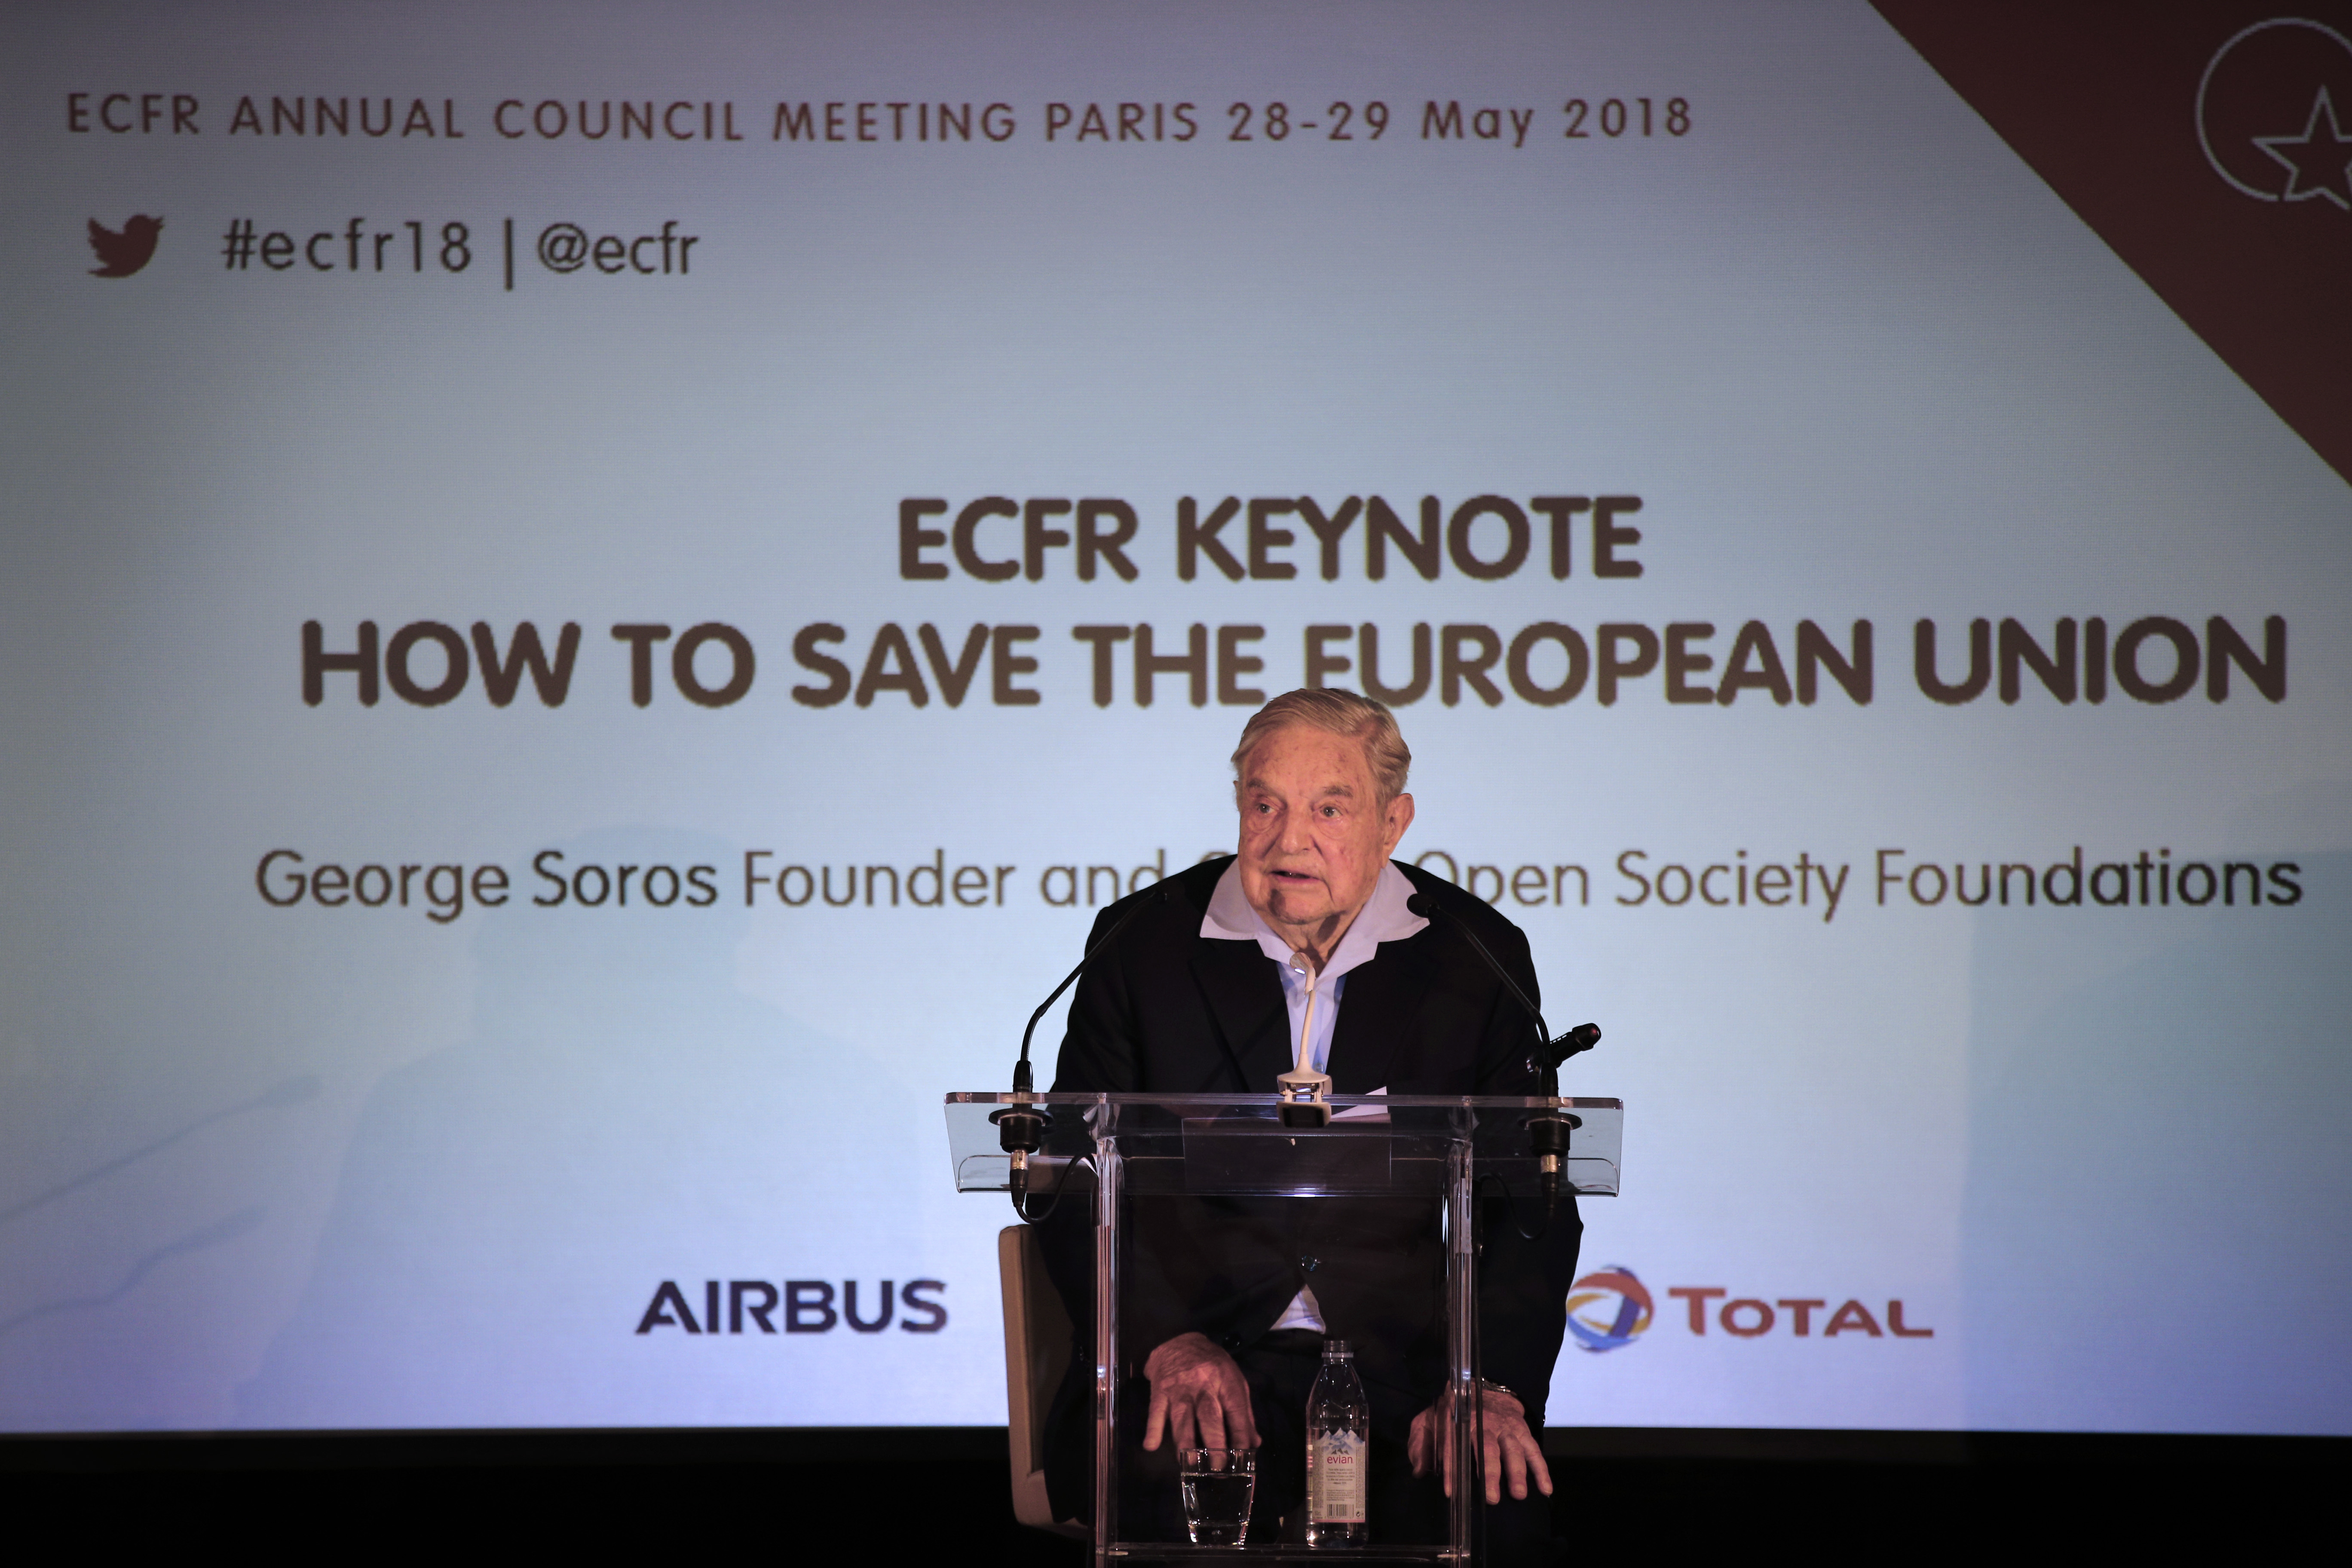 """George Soros, founder and chairman of the Open Society Foundations, deliver his speech entitled """"How to Save the European Union"""" as he attends the European Council On Foreign Relations Annual Council Meeting conference in Paris, May 29, 2018."""